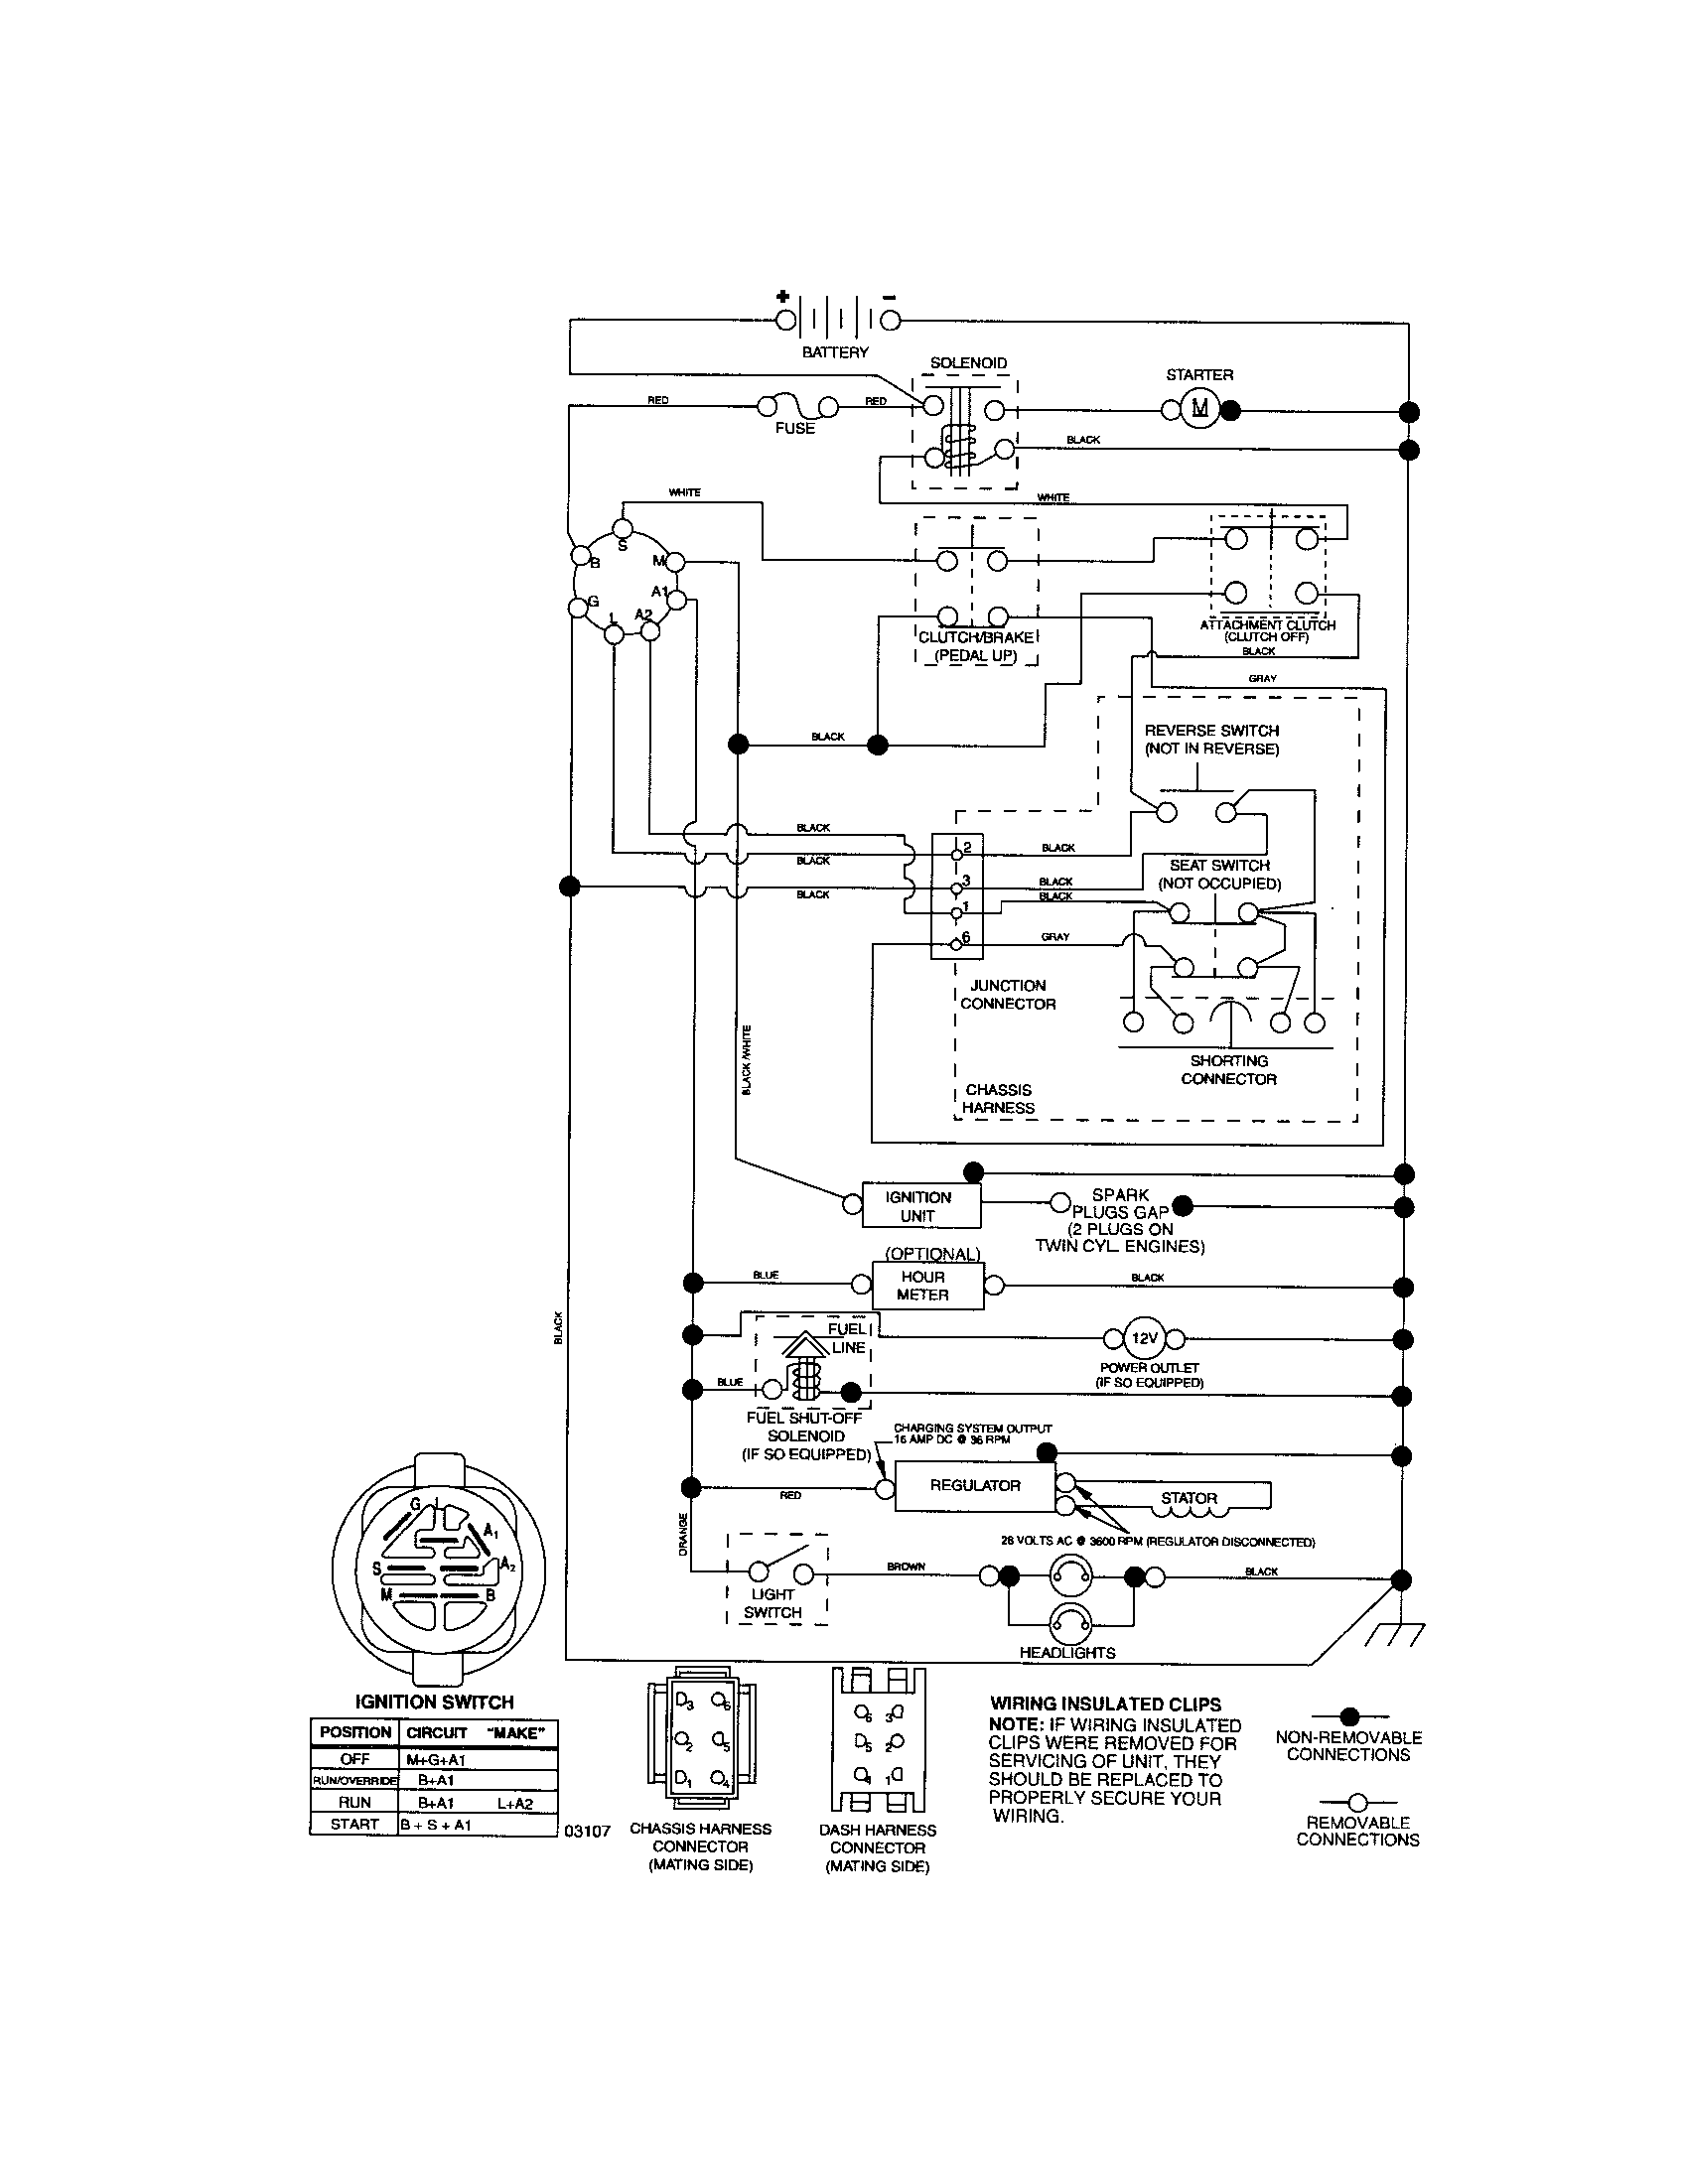 6af5f1447fd13c8443376822ddc1e105 craftsman riding mower electrical diagram wiring diagram wiring harness for craftsman riding mower at bayanpartner.co